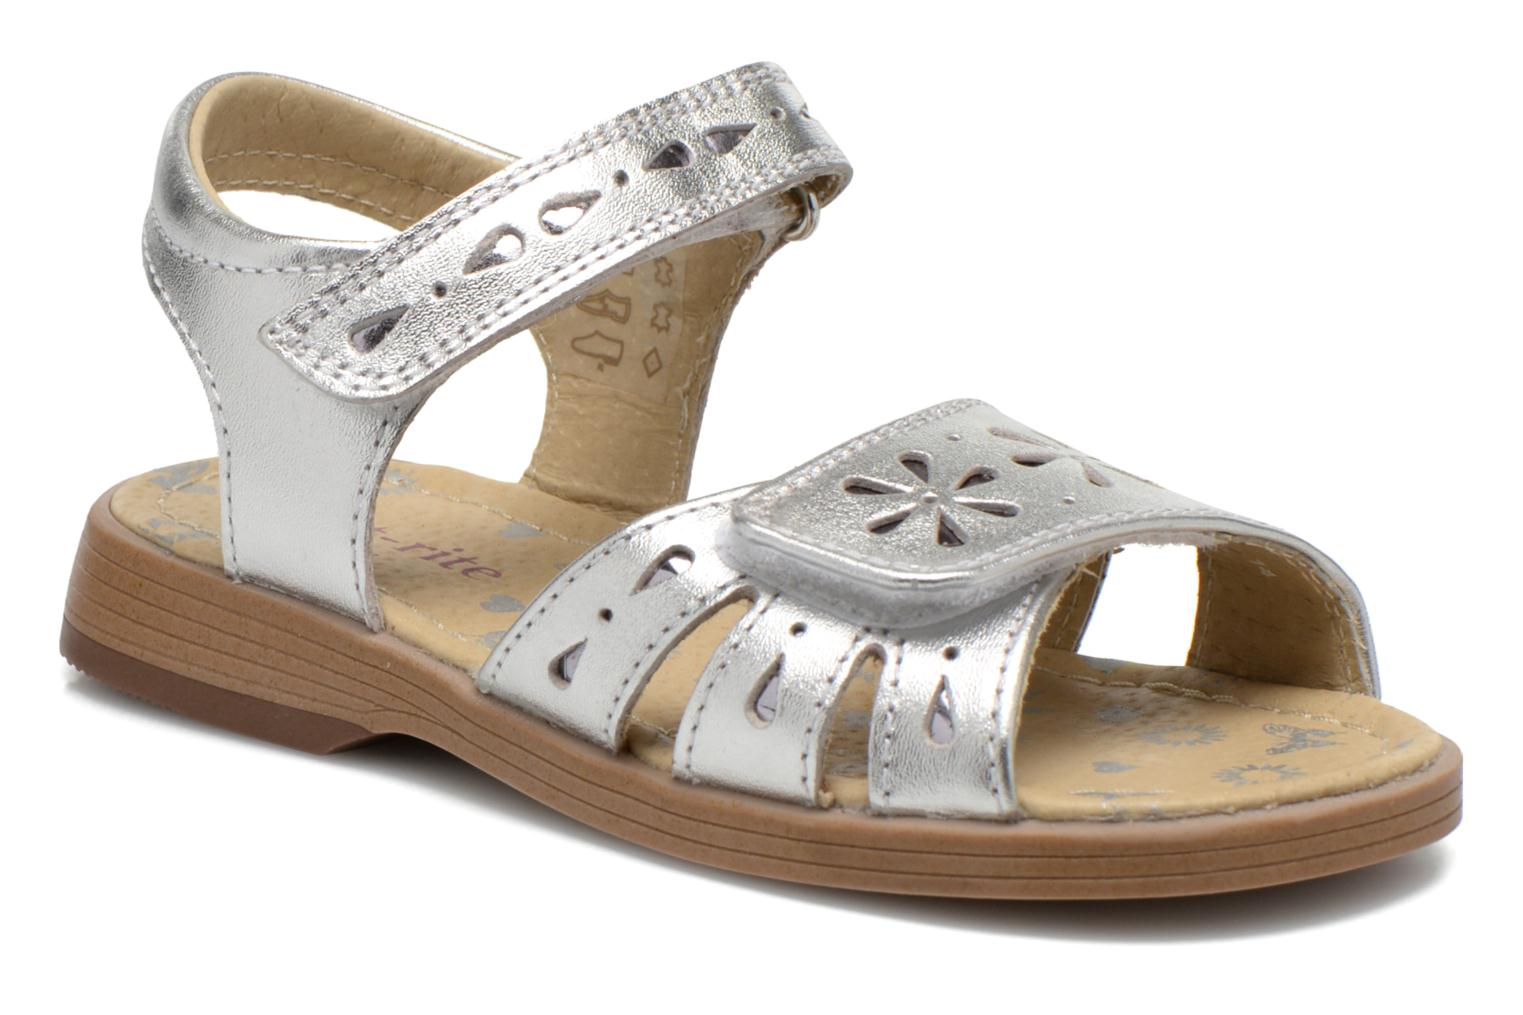 Honey Suckle Silver leather